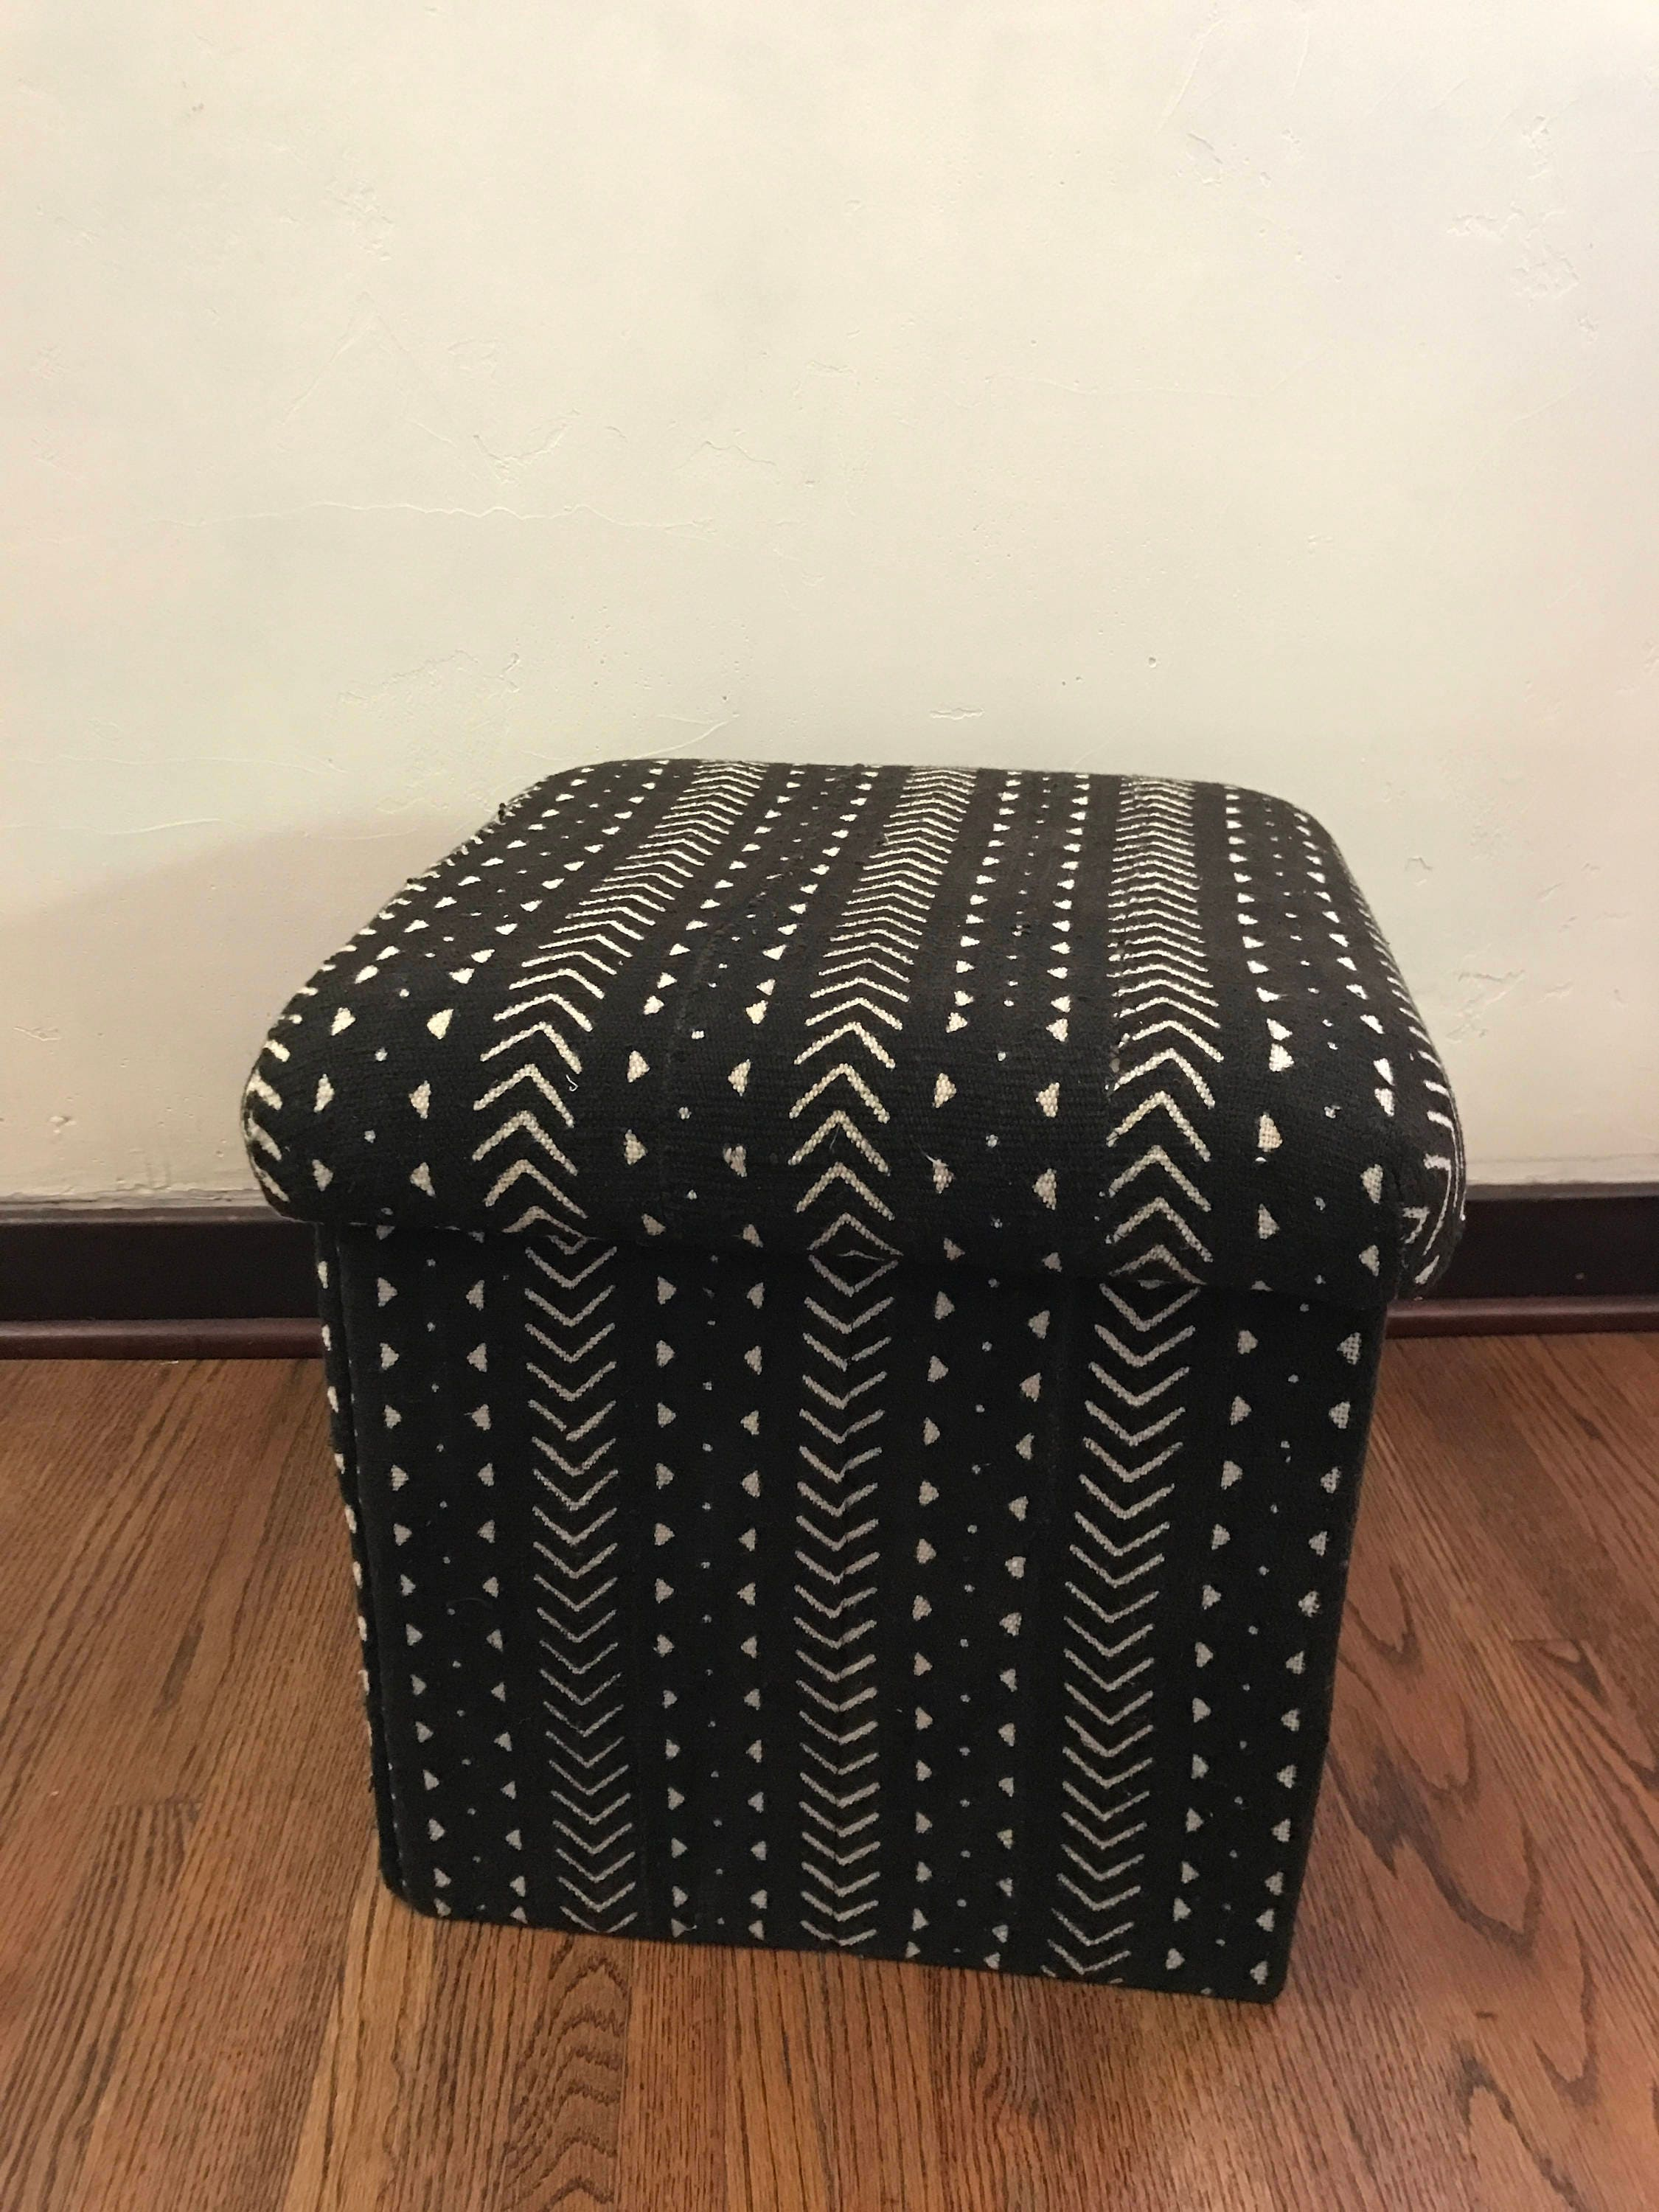 Marvelous Ottoman Storage Cube African Mudcloth With Lid Andrewgaddart Wooden Chair Designs For Living Room Andrewgaddartcom